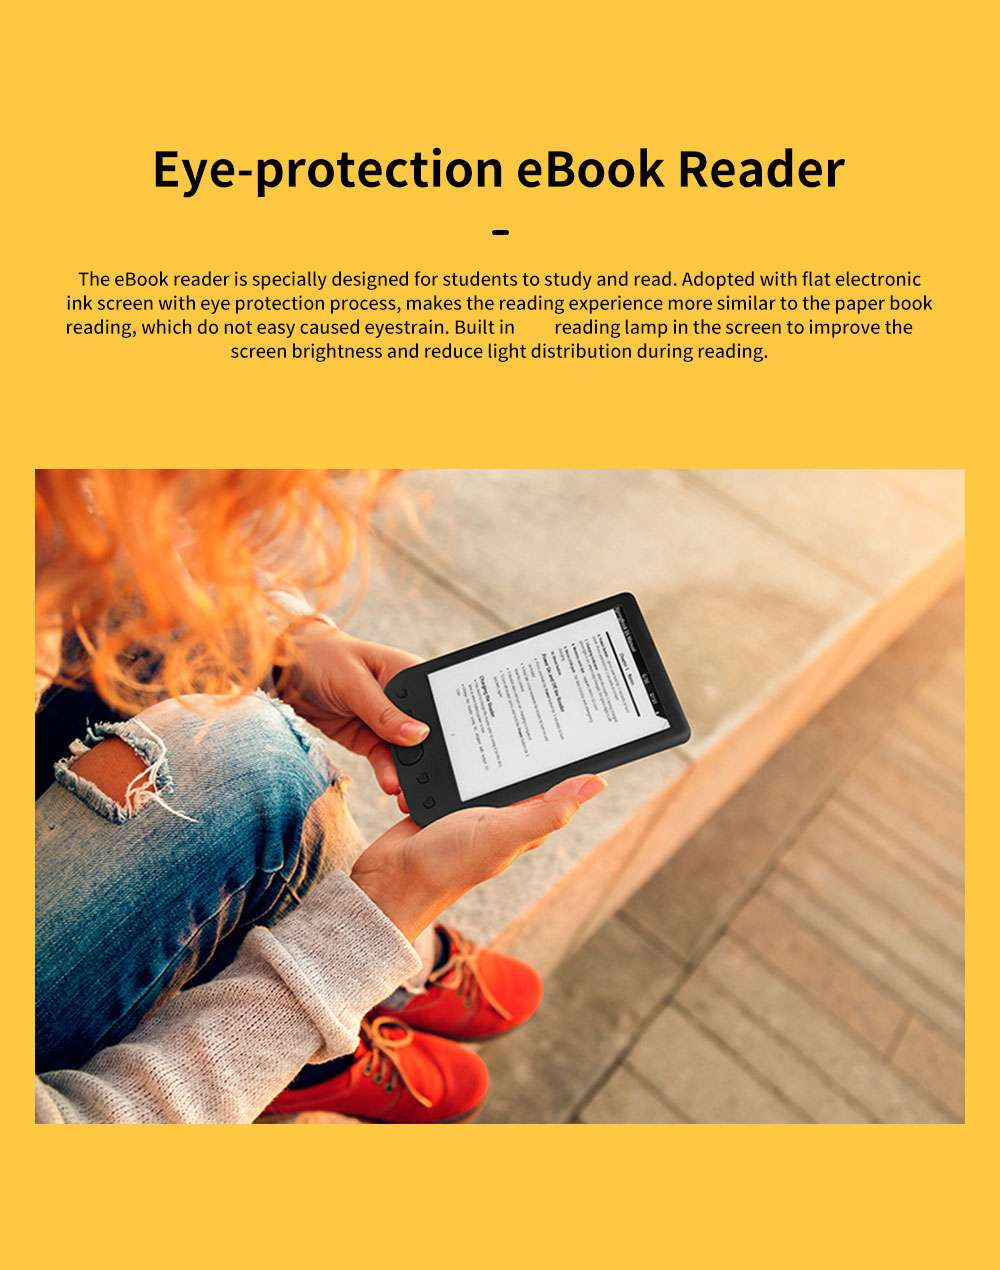 Eye-protection Electronic Book eBook Reader for Kids Students Teachers Flat Elink Screen Portable Waterproofing eBook Reader Support TF Card 0